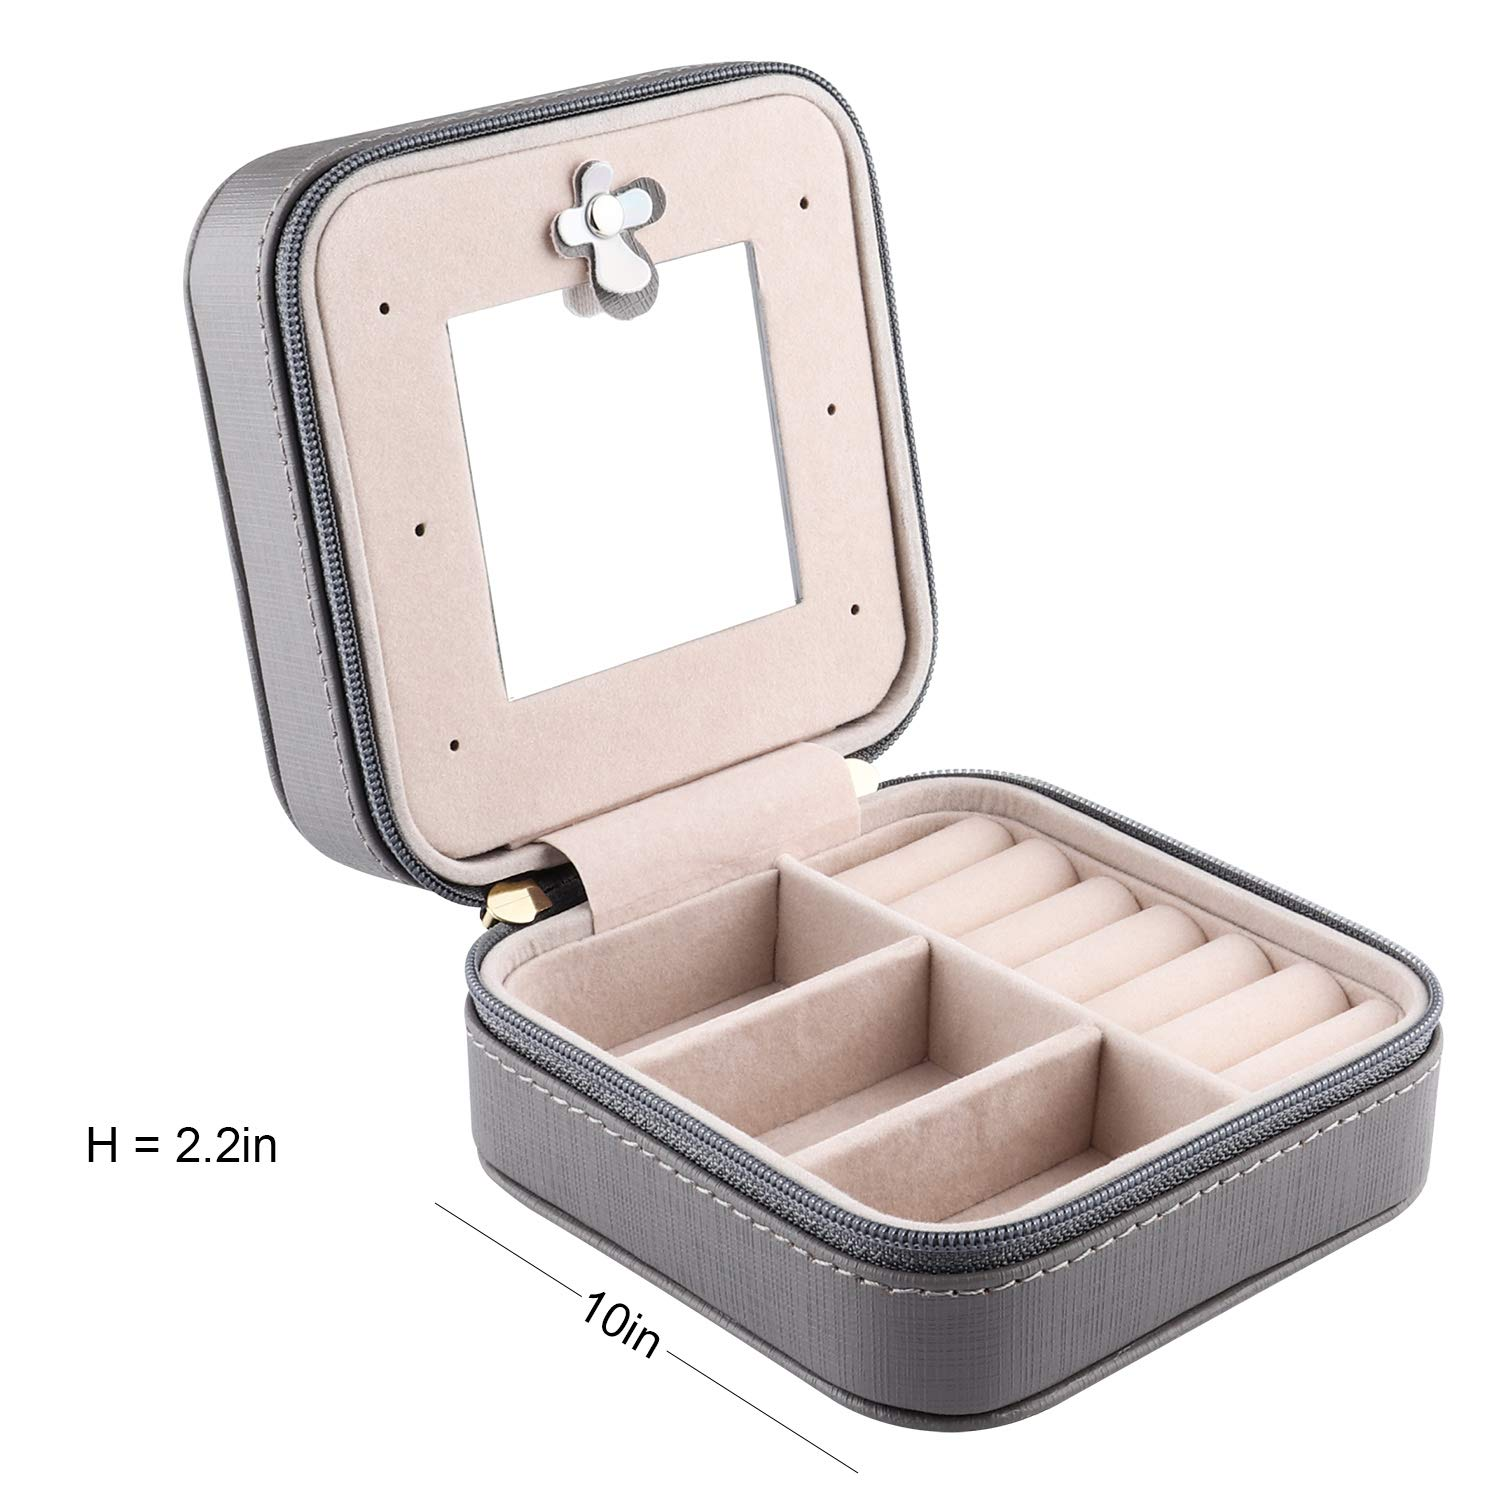 Duomiila Small Jewelry Box Travel Mini Organizer Portable Display Storage Case for Rings Earrings Necklace,Gifts for Girls Women Black